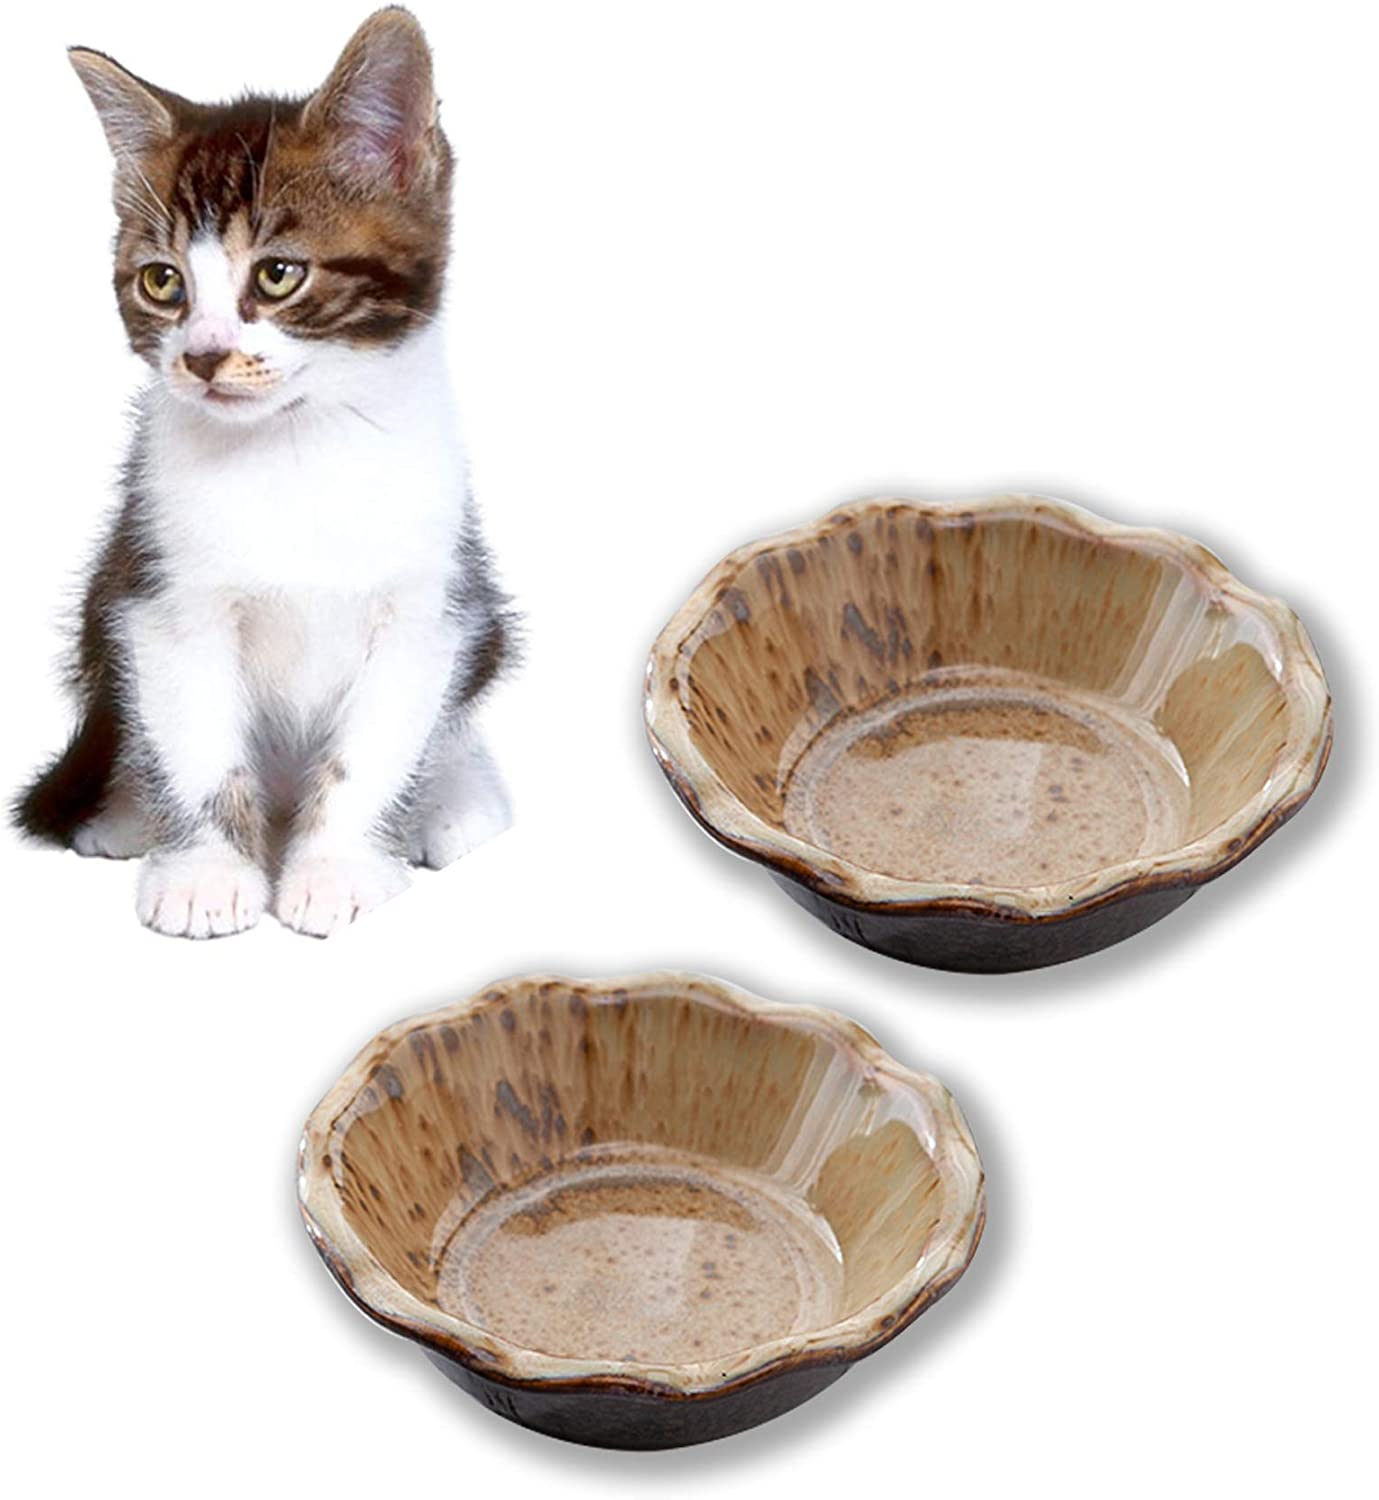 Jemirry Basic Cat Food Bowl, Wide Cat Dish, Ceramic Cat Food Bowl for Relief of Whisker Fatigue, Pet Food & Water Bowls Set of 2